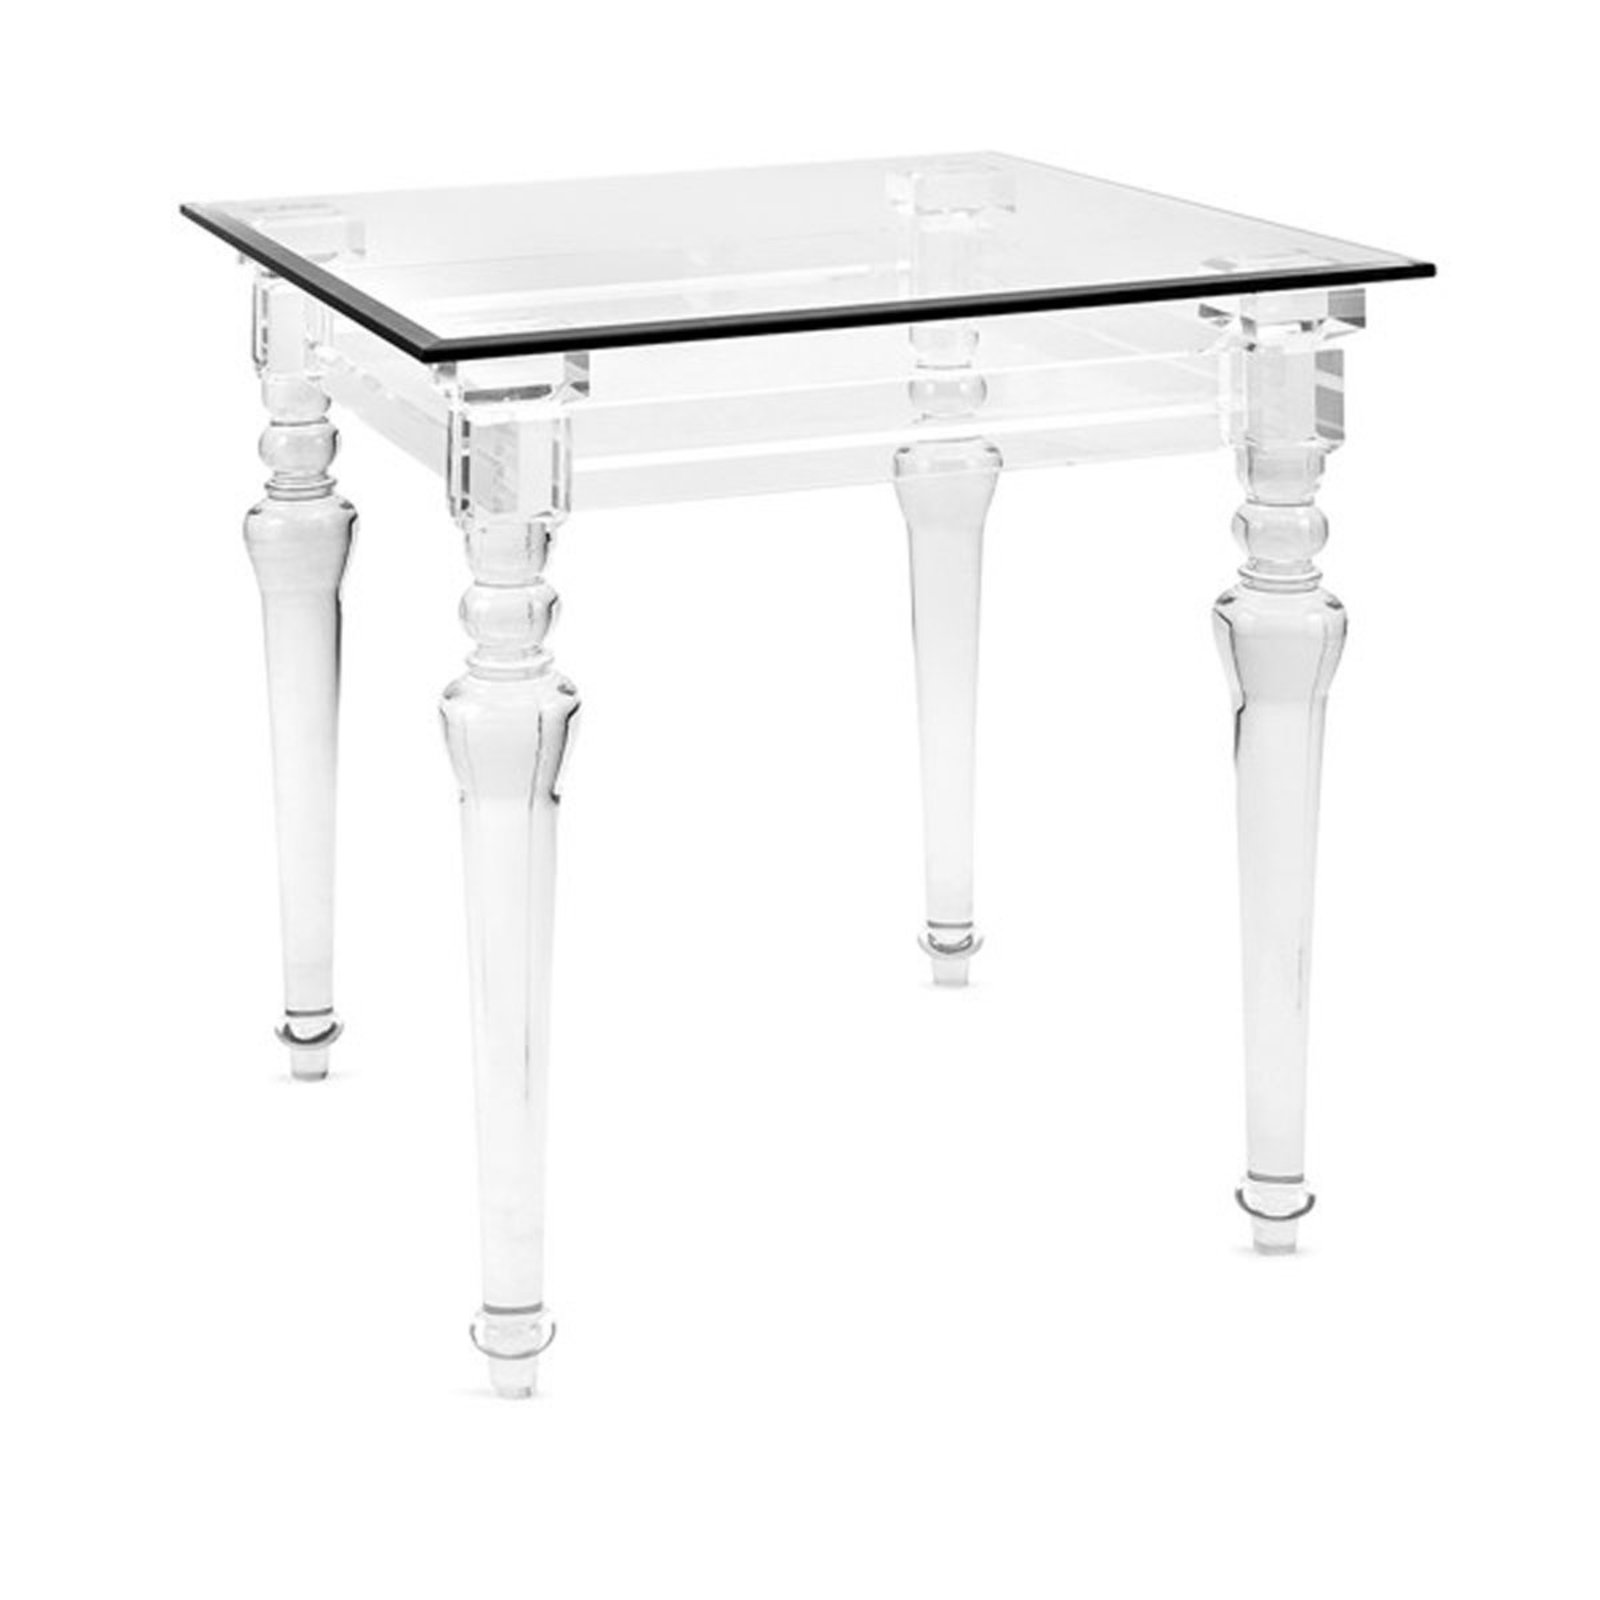 coffee tables side shades light marmont modern acrylic table extra small accent shabby chic sideboard glass top aluminum decorative end makeup desk tile reducer threshold pier one